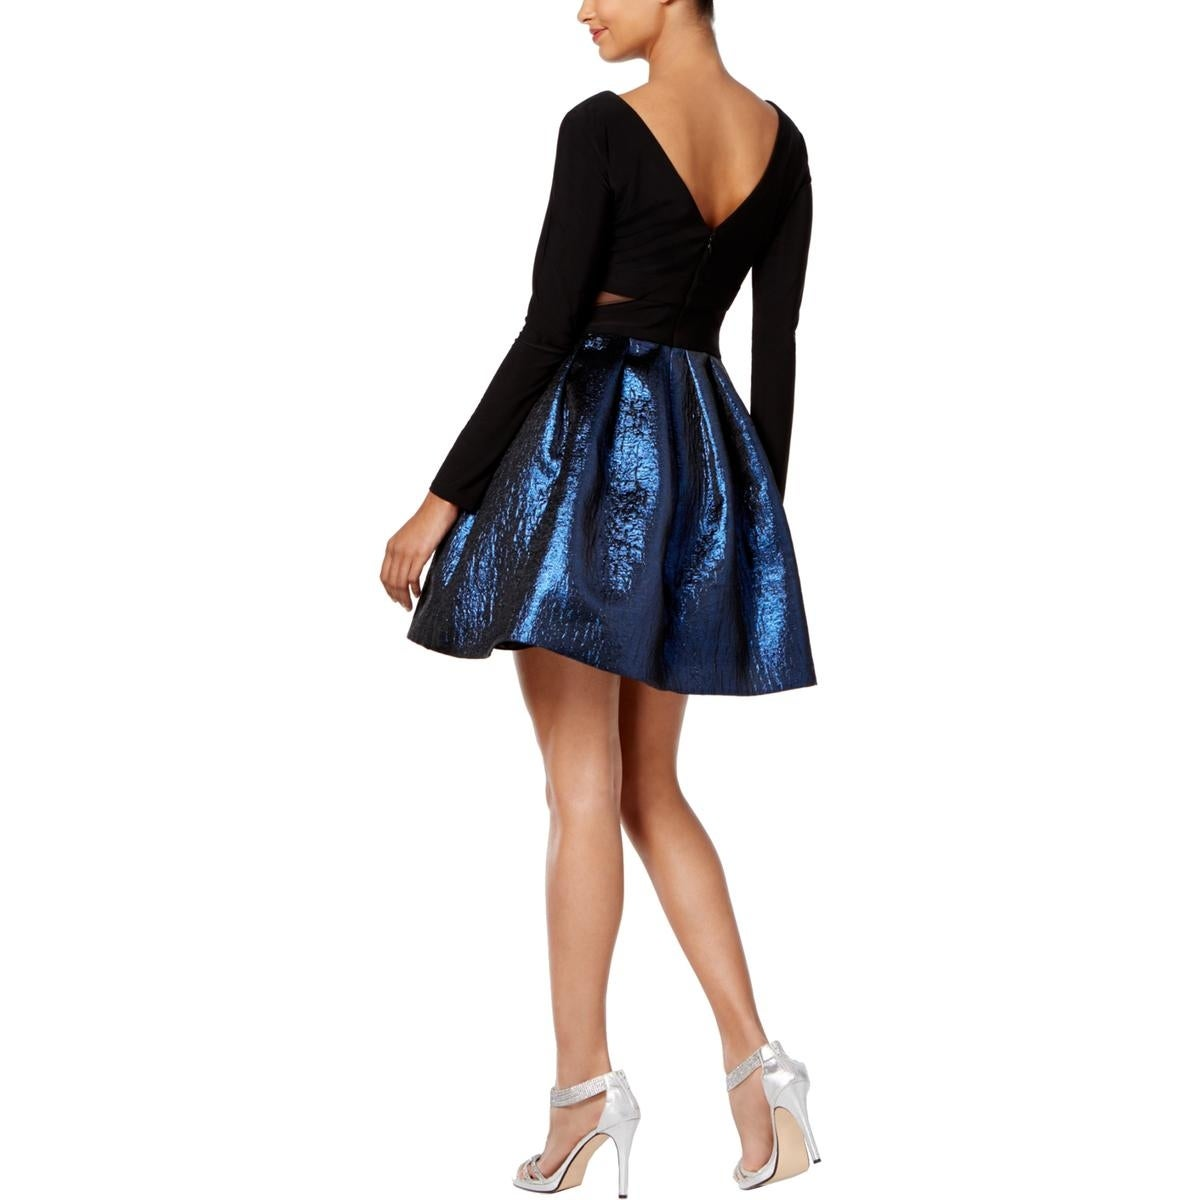 4032f478 Shop Xscape Womens Cocktail Dress Fit & Flare Mini - Free Shipping On  Orders Over $45 - Overstock - 25669927